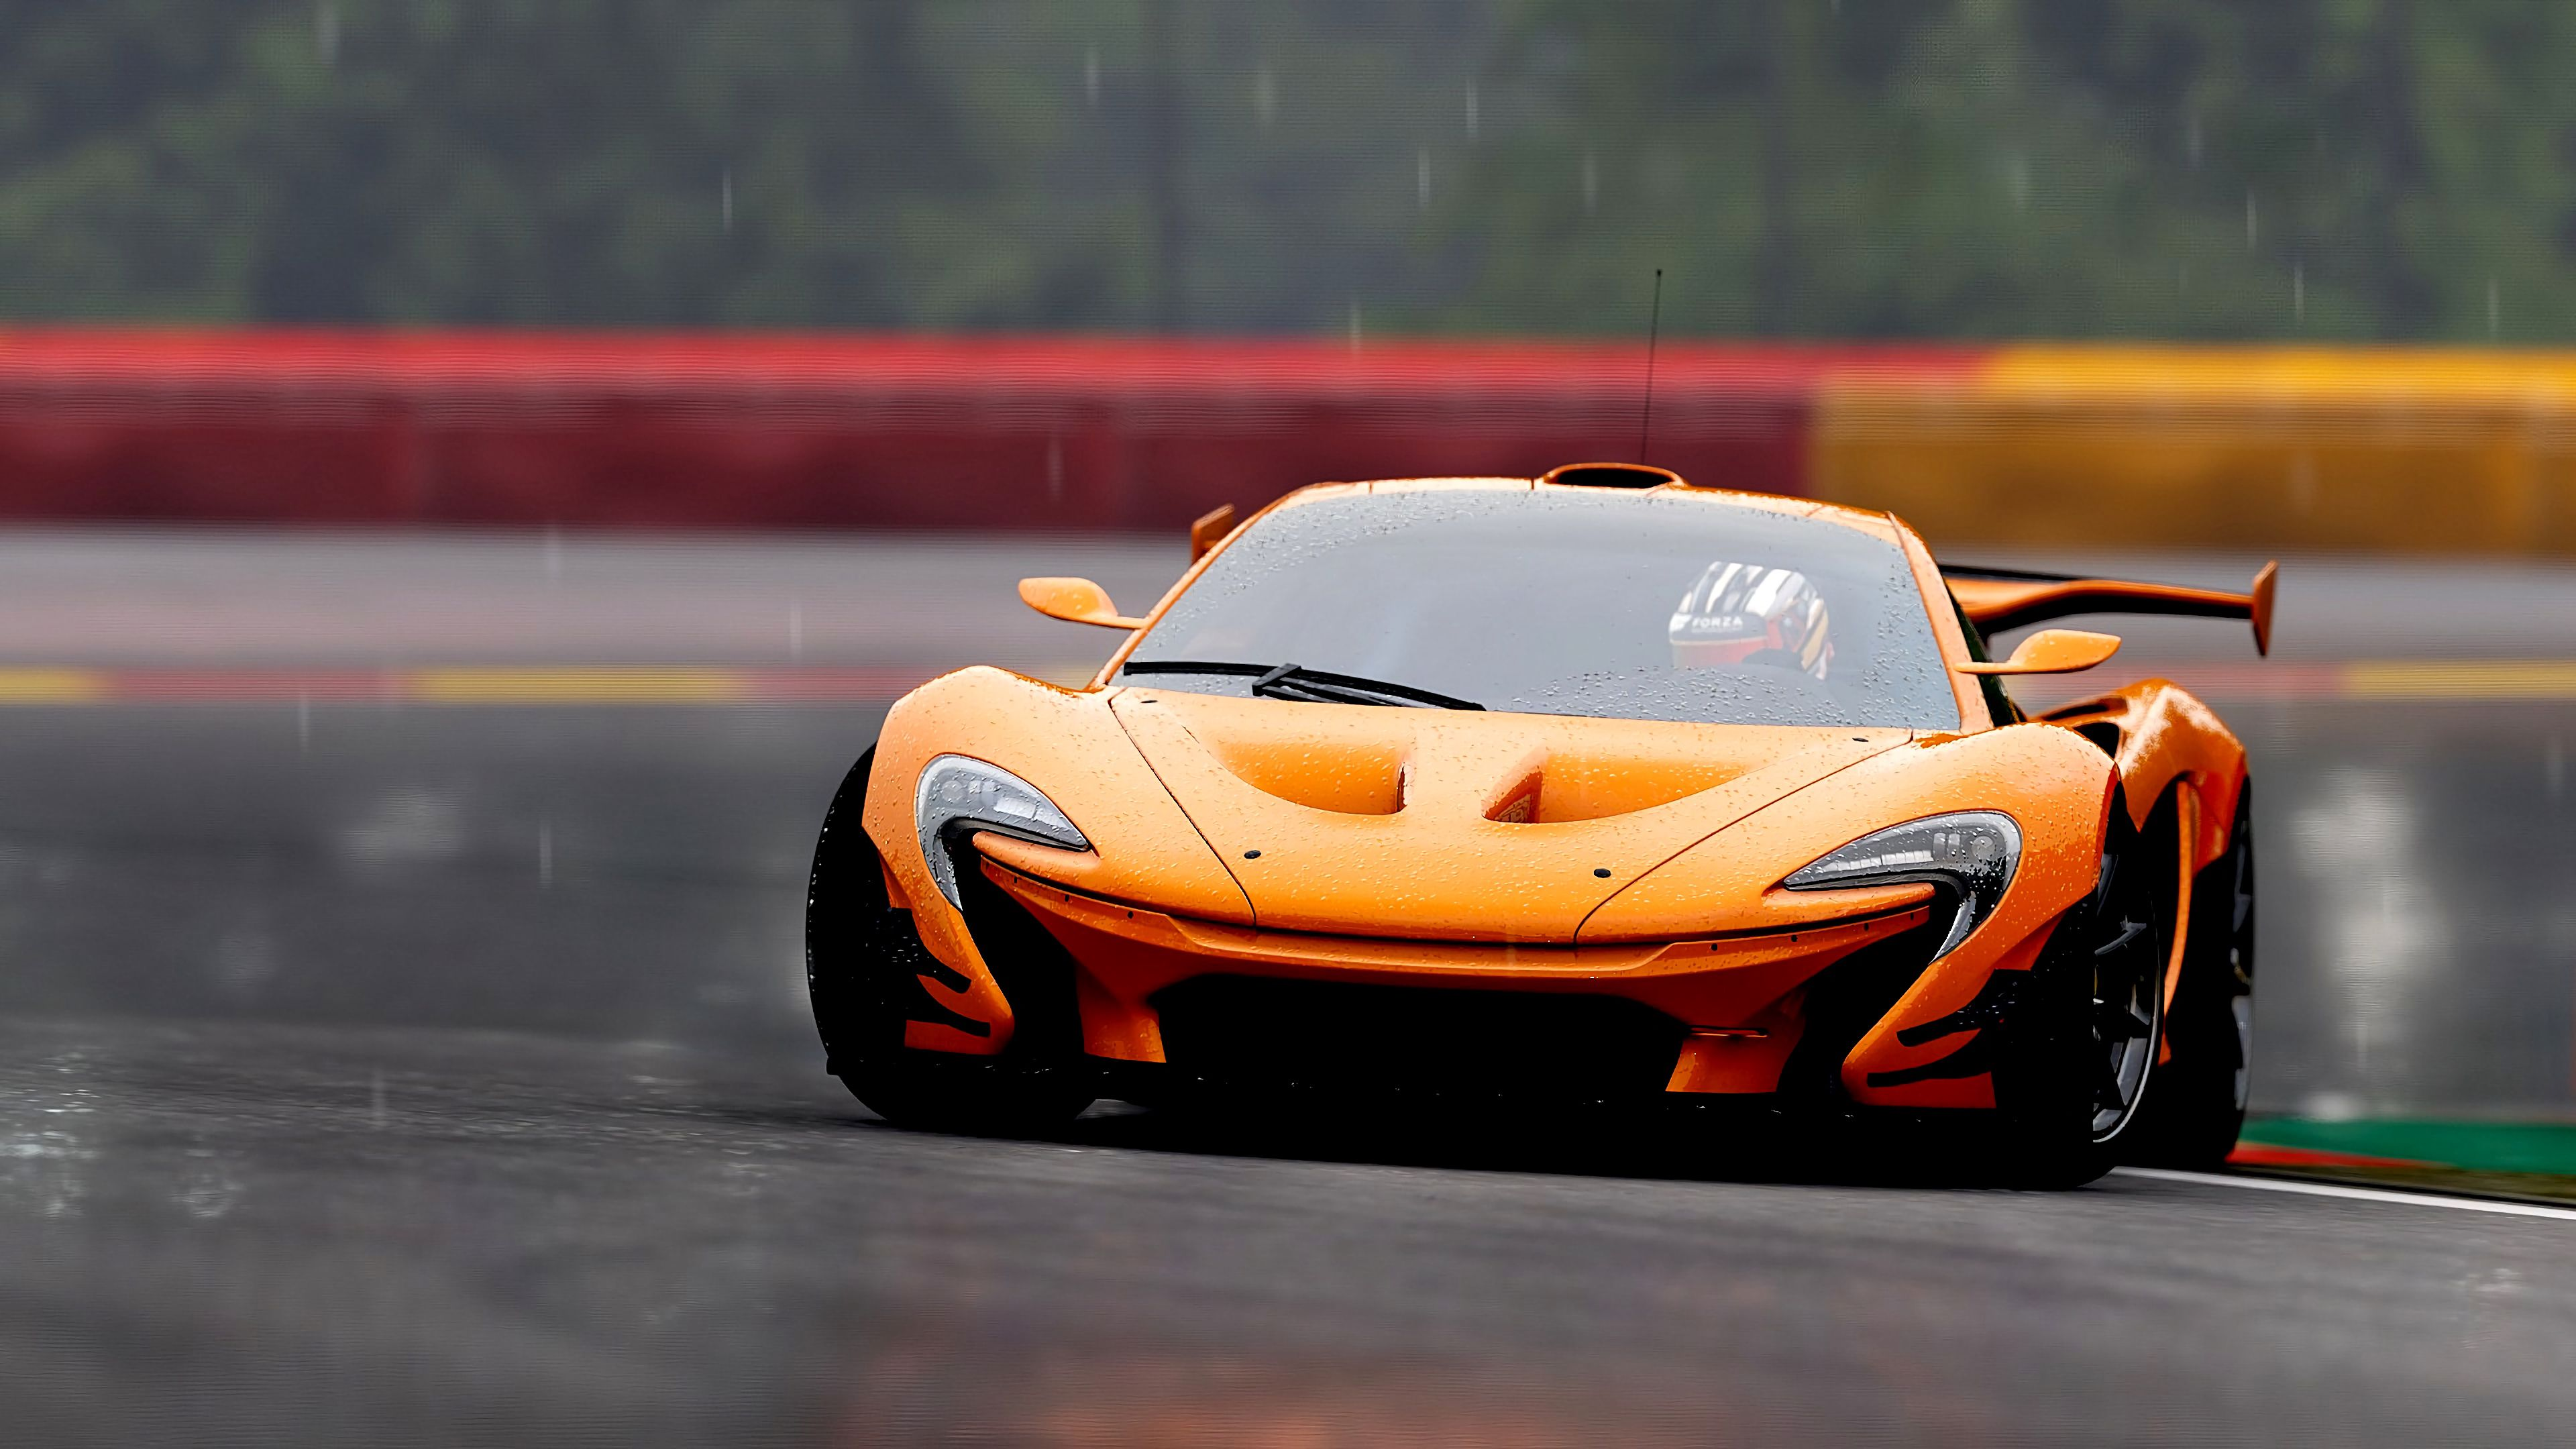 136784 Screensavers and Wallpapers Races for phone. Download Sports, Races, Mclaren, Cars, Front View, Sports Car, Mclaren P1, Mclaren P1 Gtr pictures for free